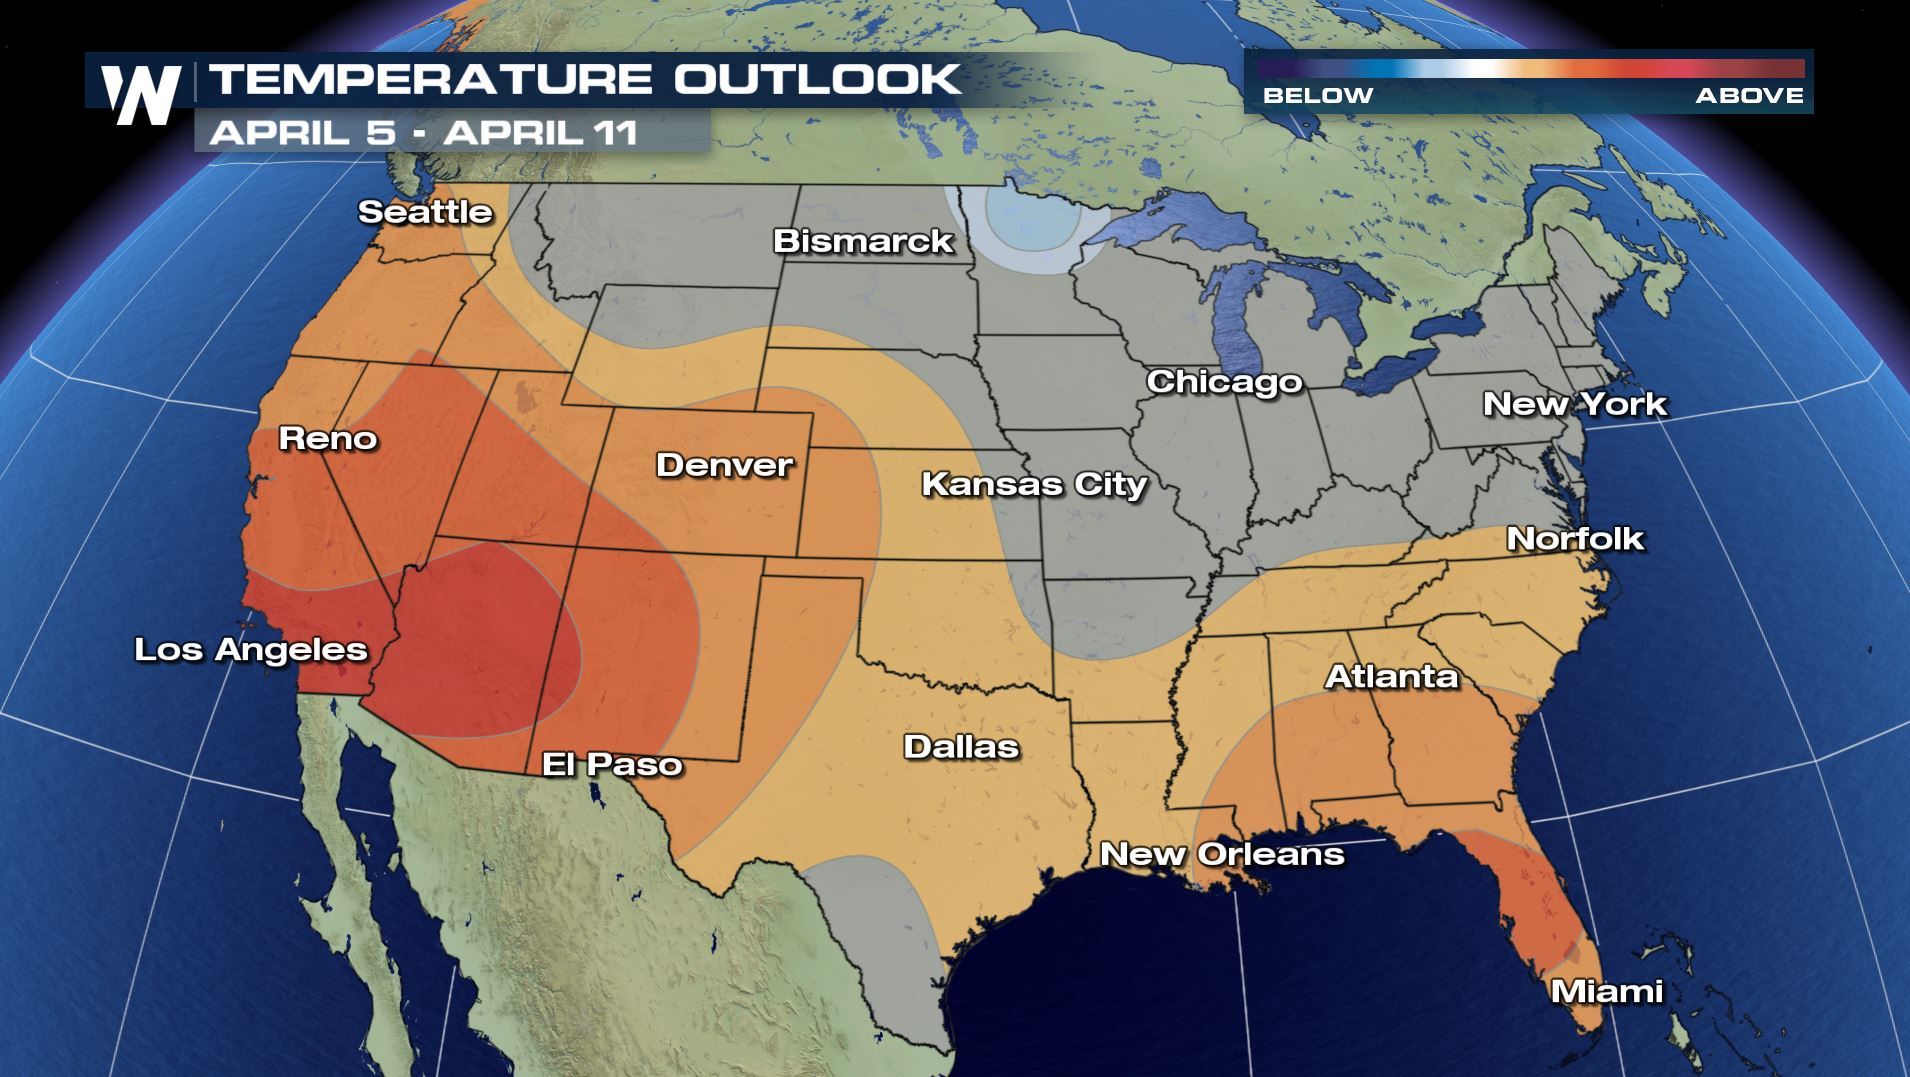 Temperatures On A Spring Roller Coaster Ride Weathernation - Us-weather-map-with-temperatures